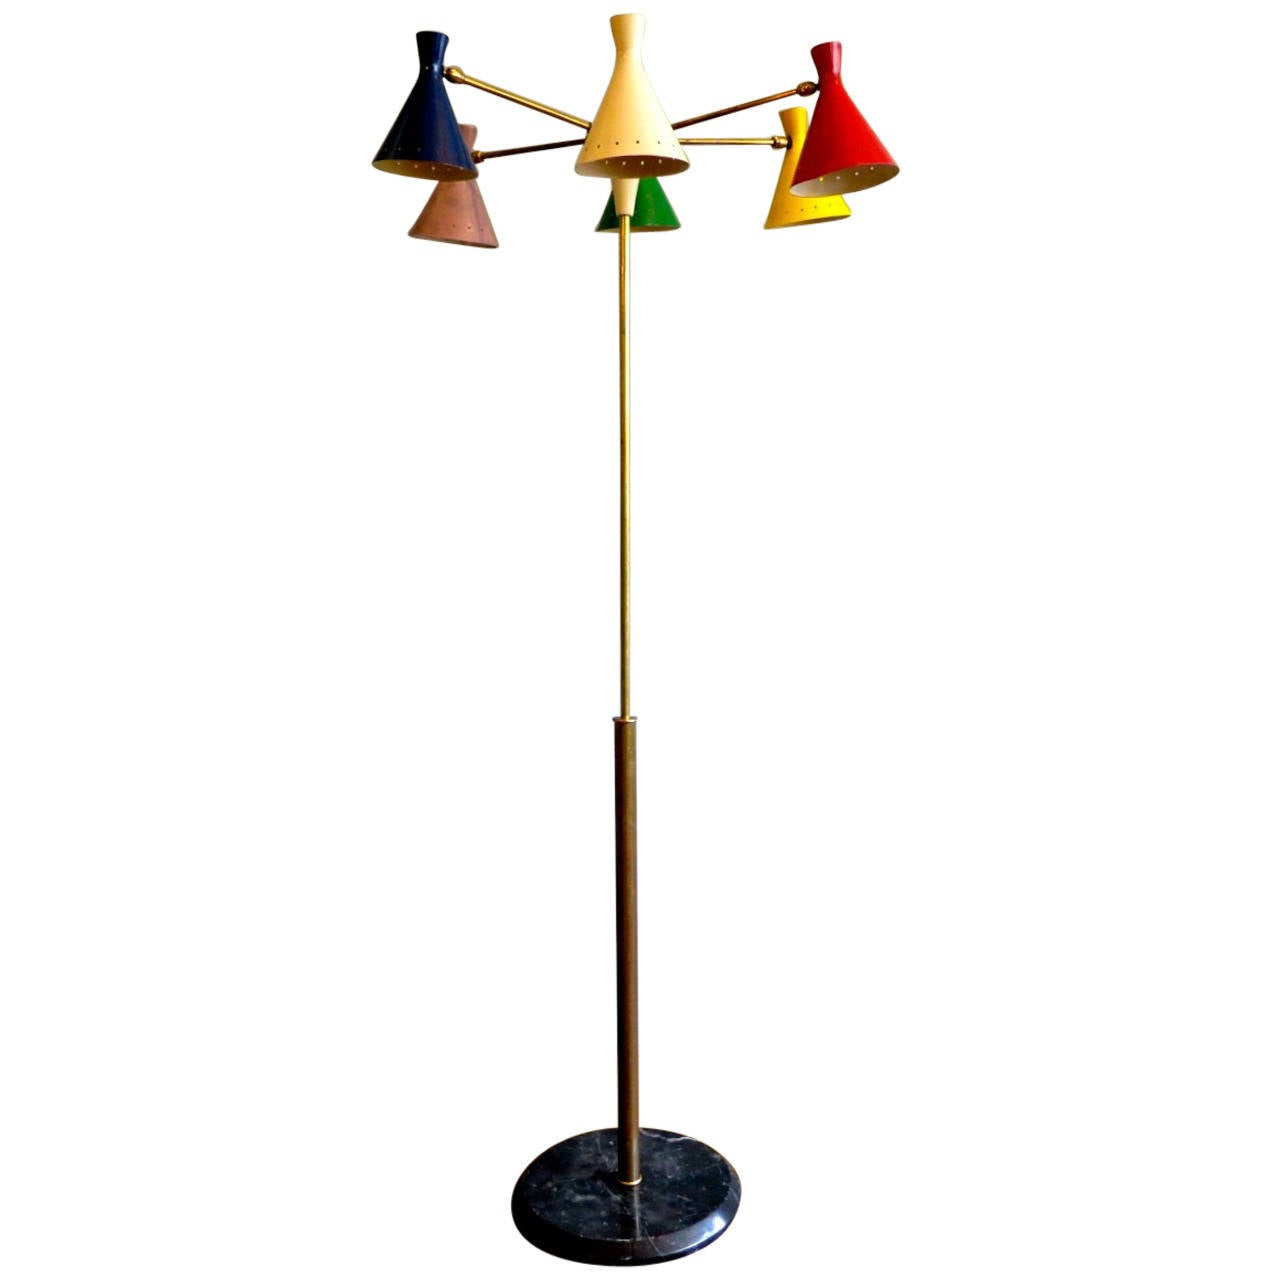 italian brass and multicolored shade floor lamp at 1stdibs. Black Bedroom Furniture Sets. Home Design Ideas